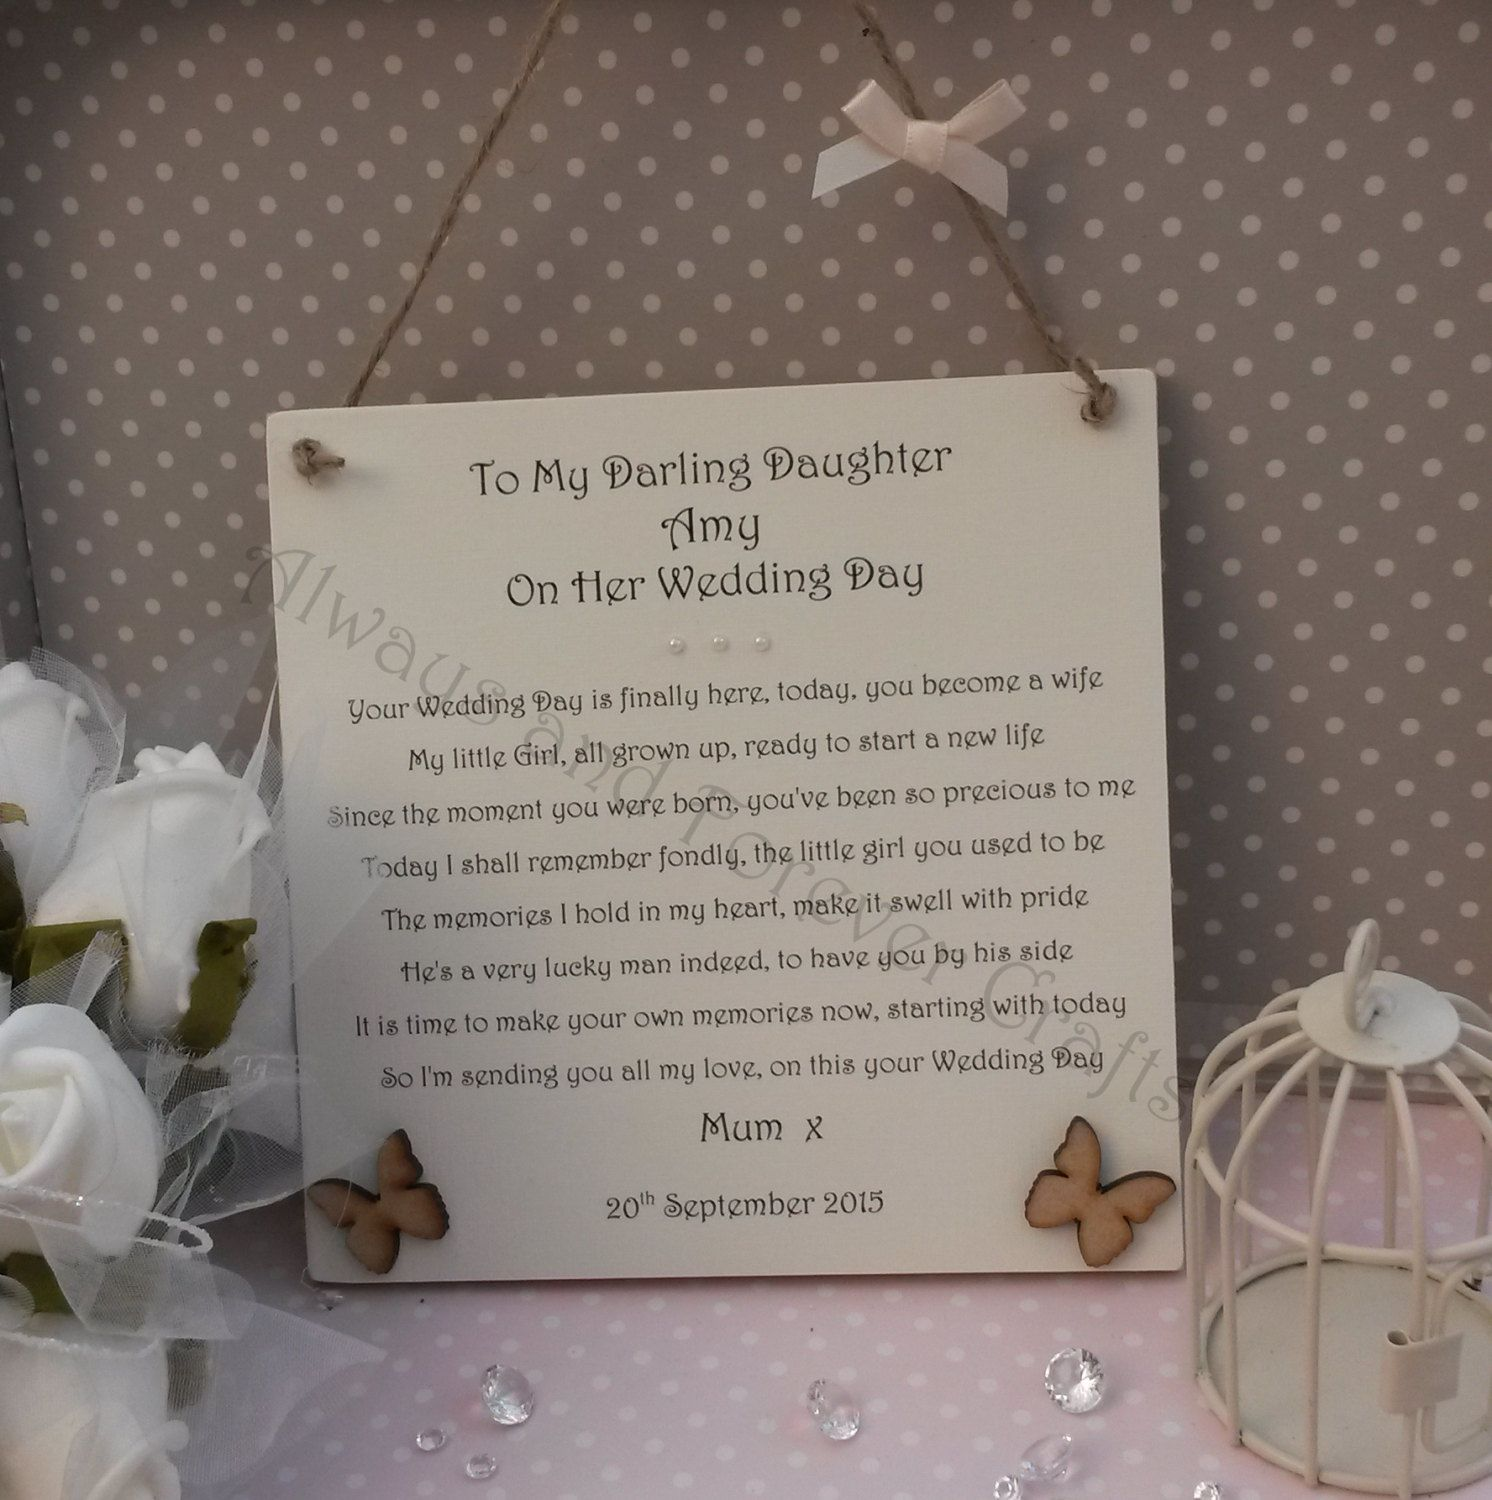 A Personalised Plaque Measuring 15 X Cm For The Mother Father Of Bride To Give Her Daughter On Day Wedding